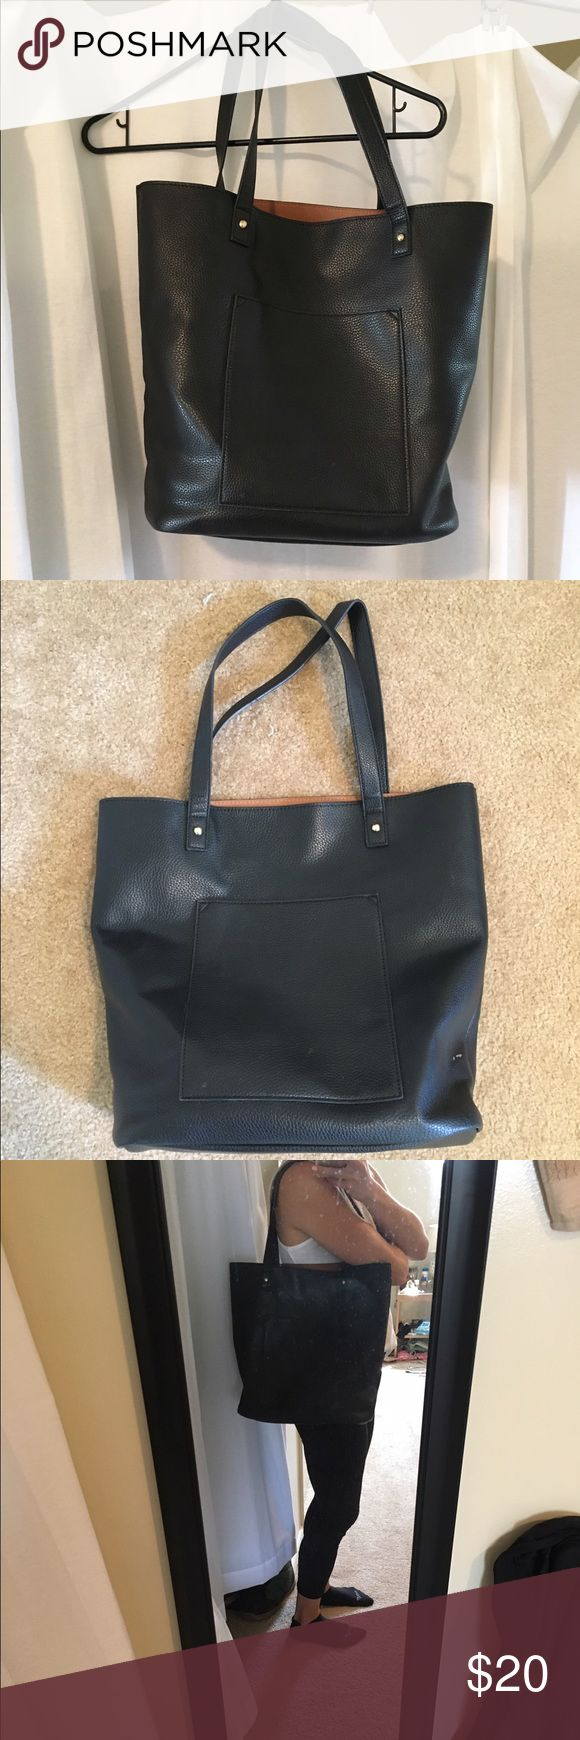 Large bucket black tote bag Large bucket black tote bag. Lightly used. Slight pen marks in inside, slight scuff on the side, and slight peeling on the handle. All pictured. Still in good condition! Offers welcome. Urban Outfitters Bags Totes